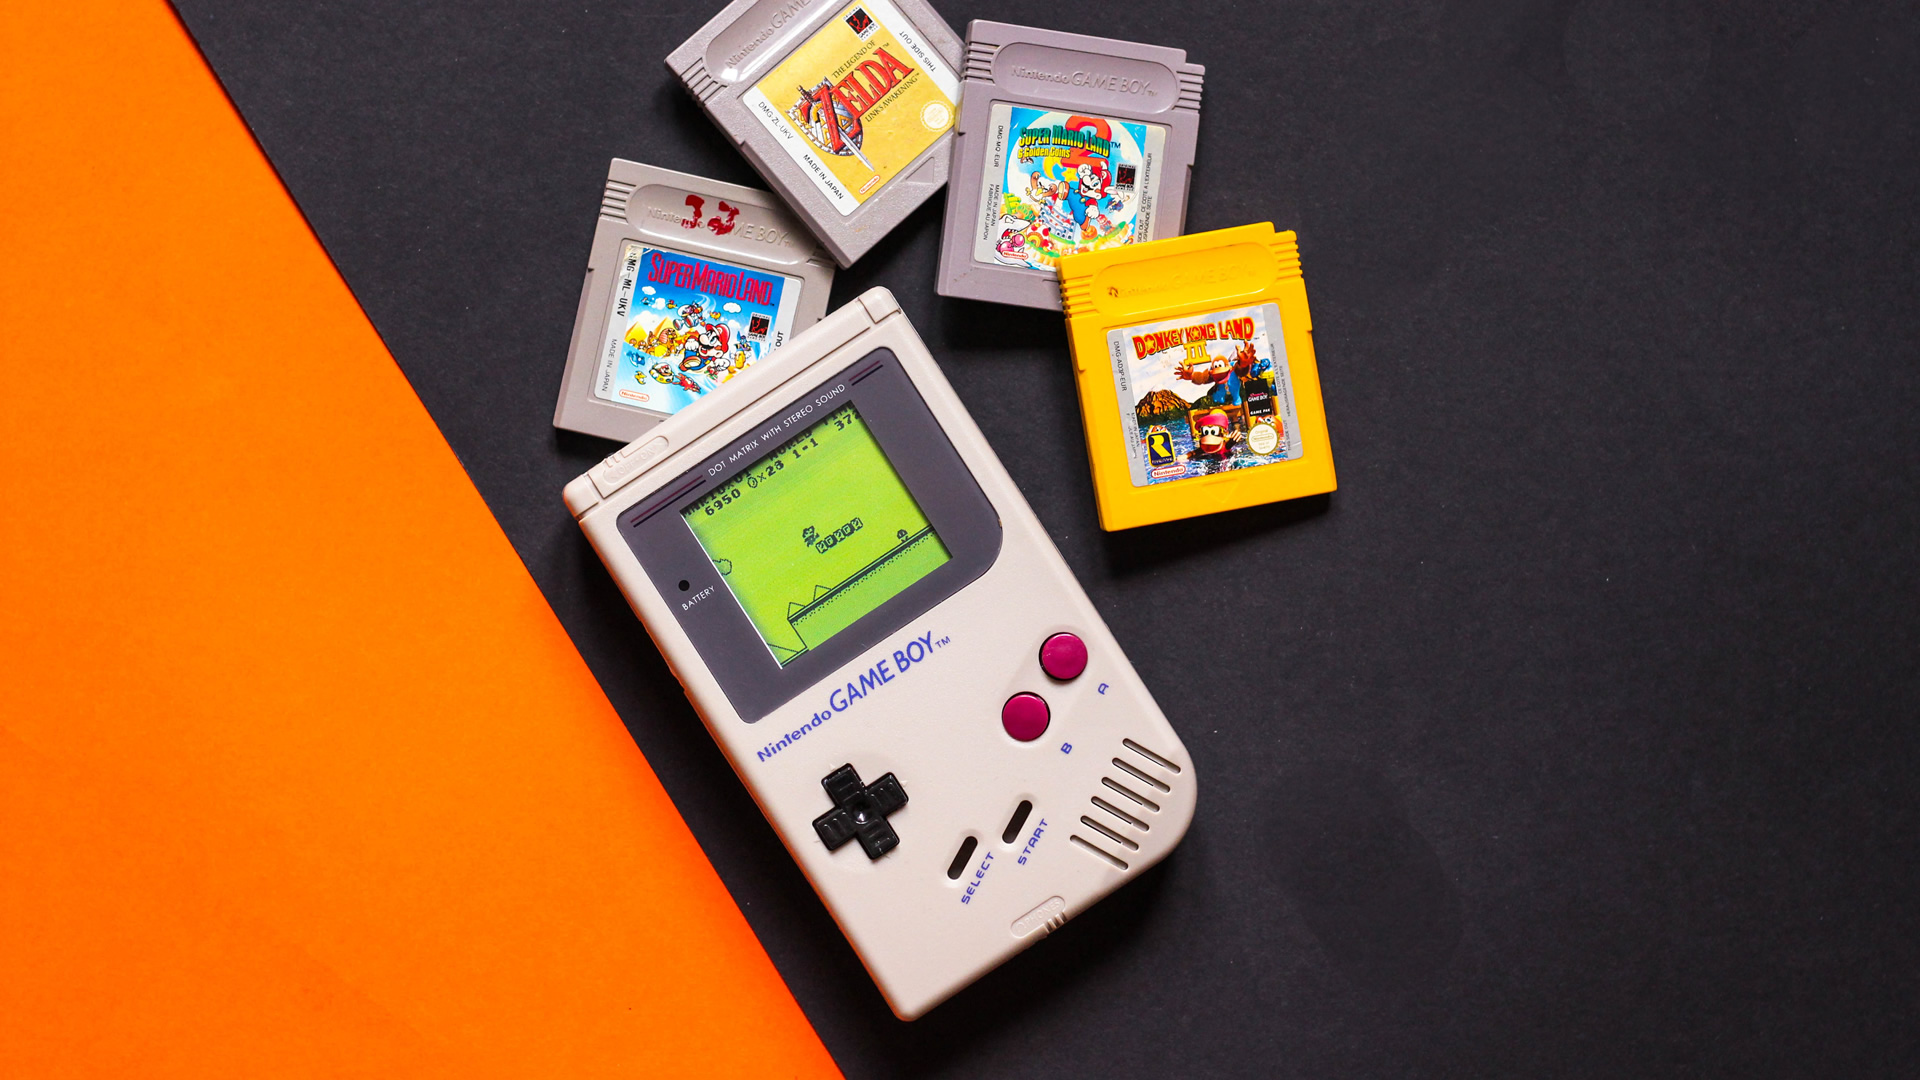 Game Boy Turns 30 – A History of the Game Boy